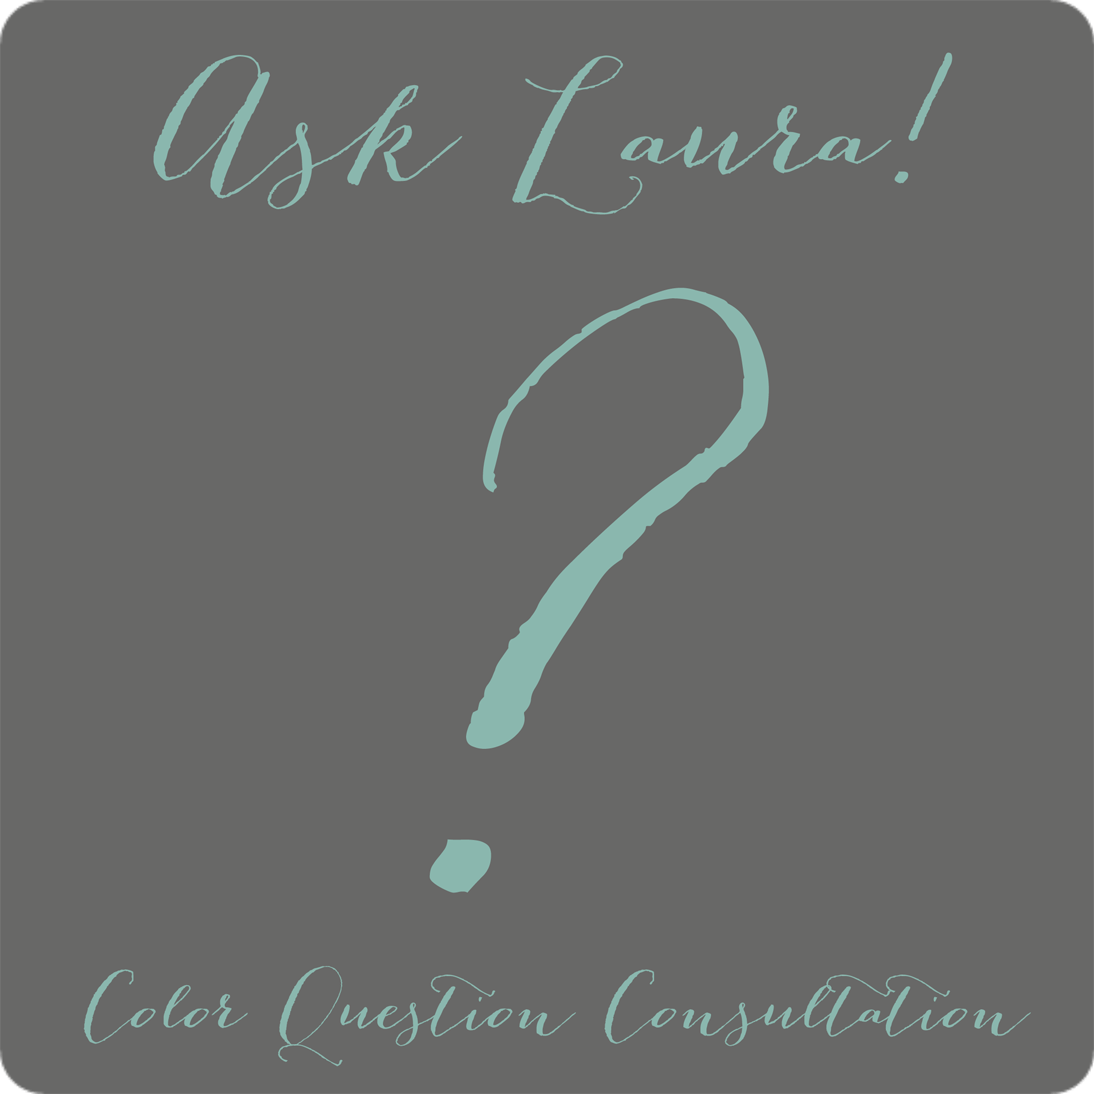 Ask Laura! Color Question Consultation